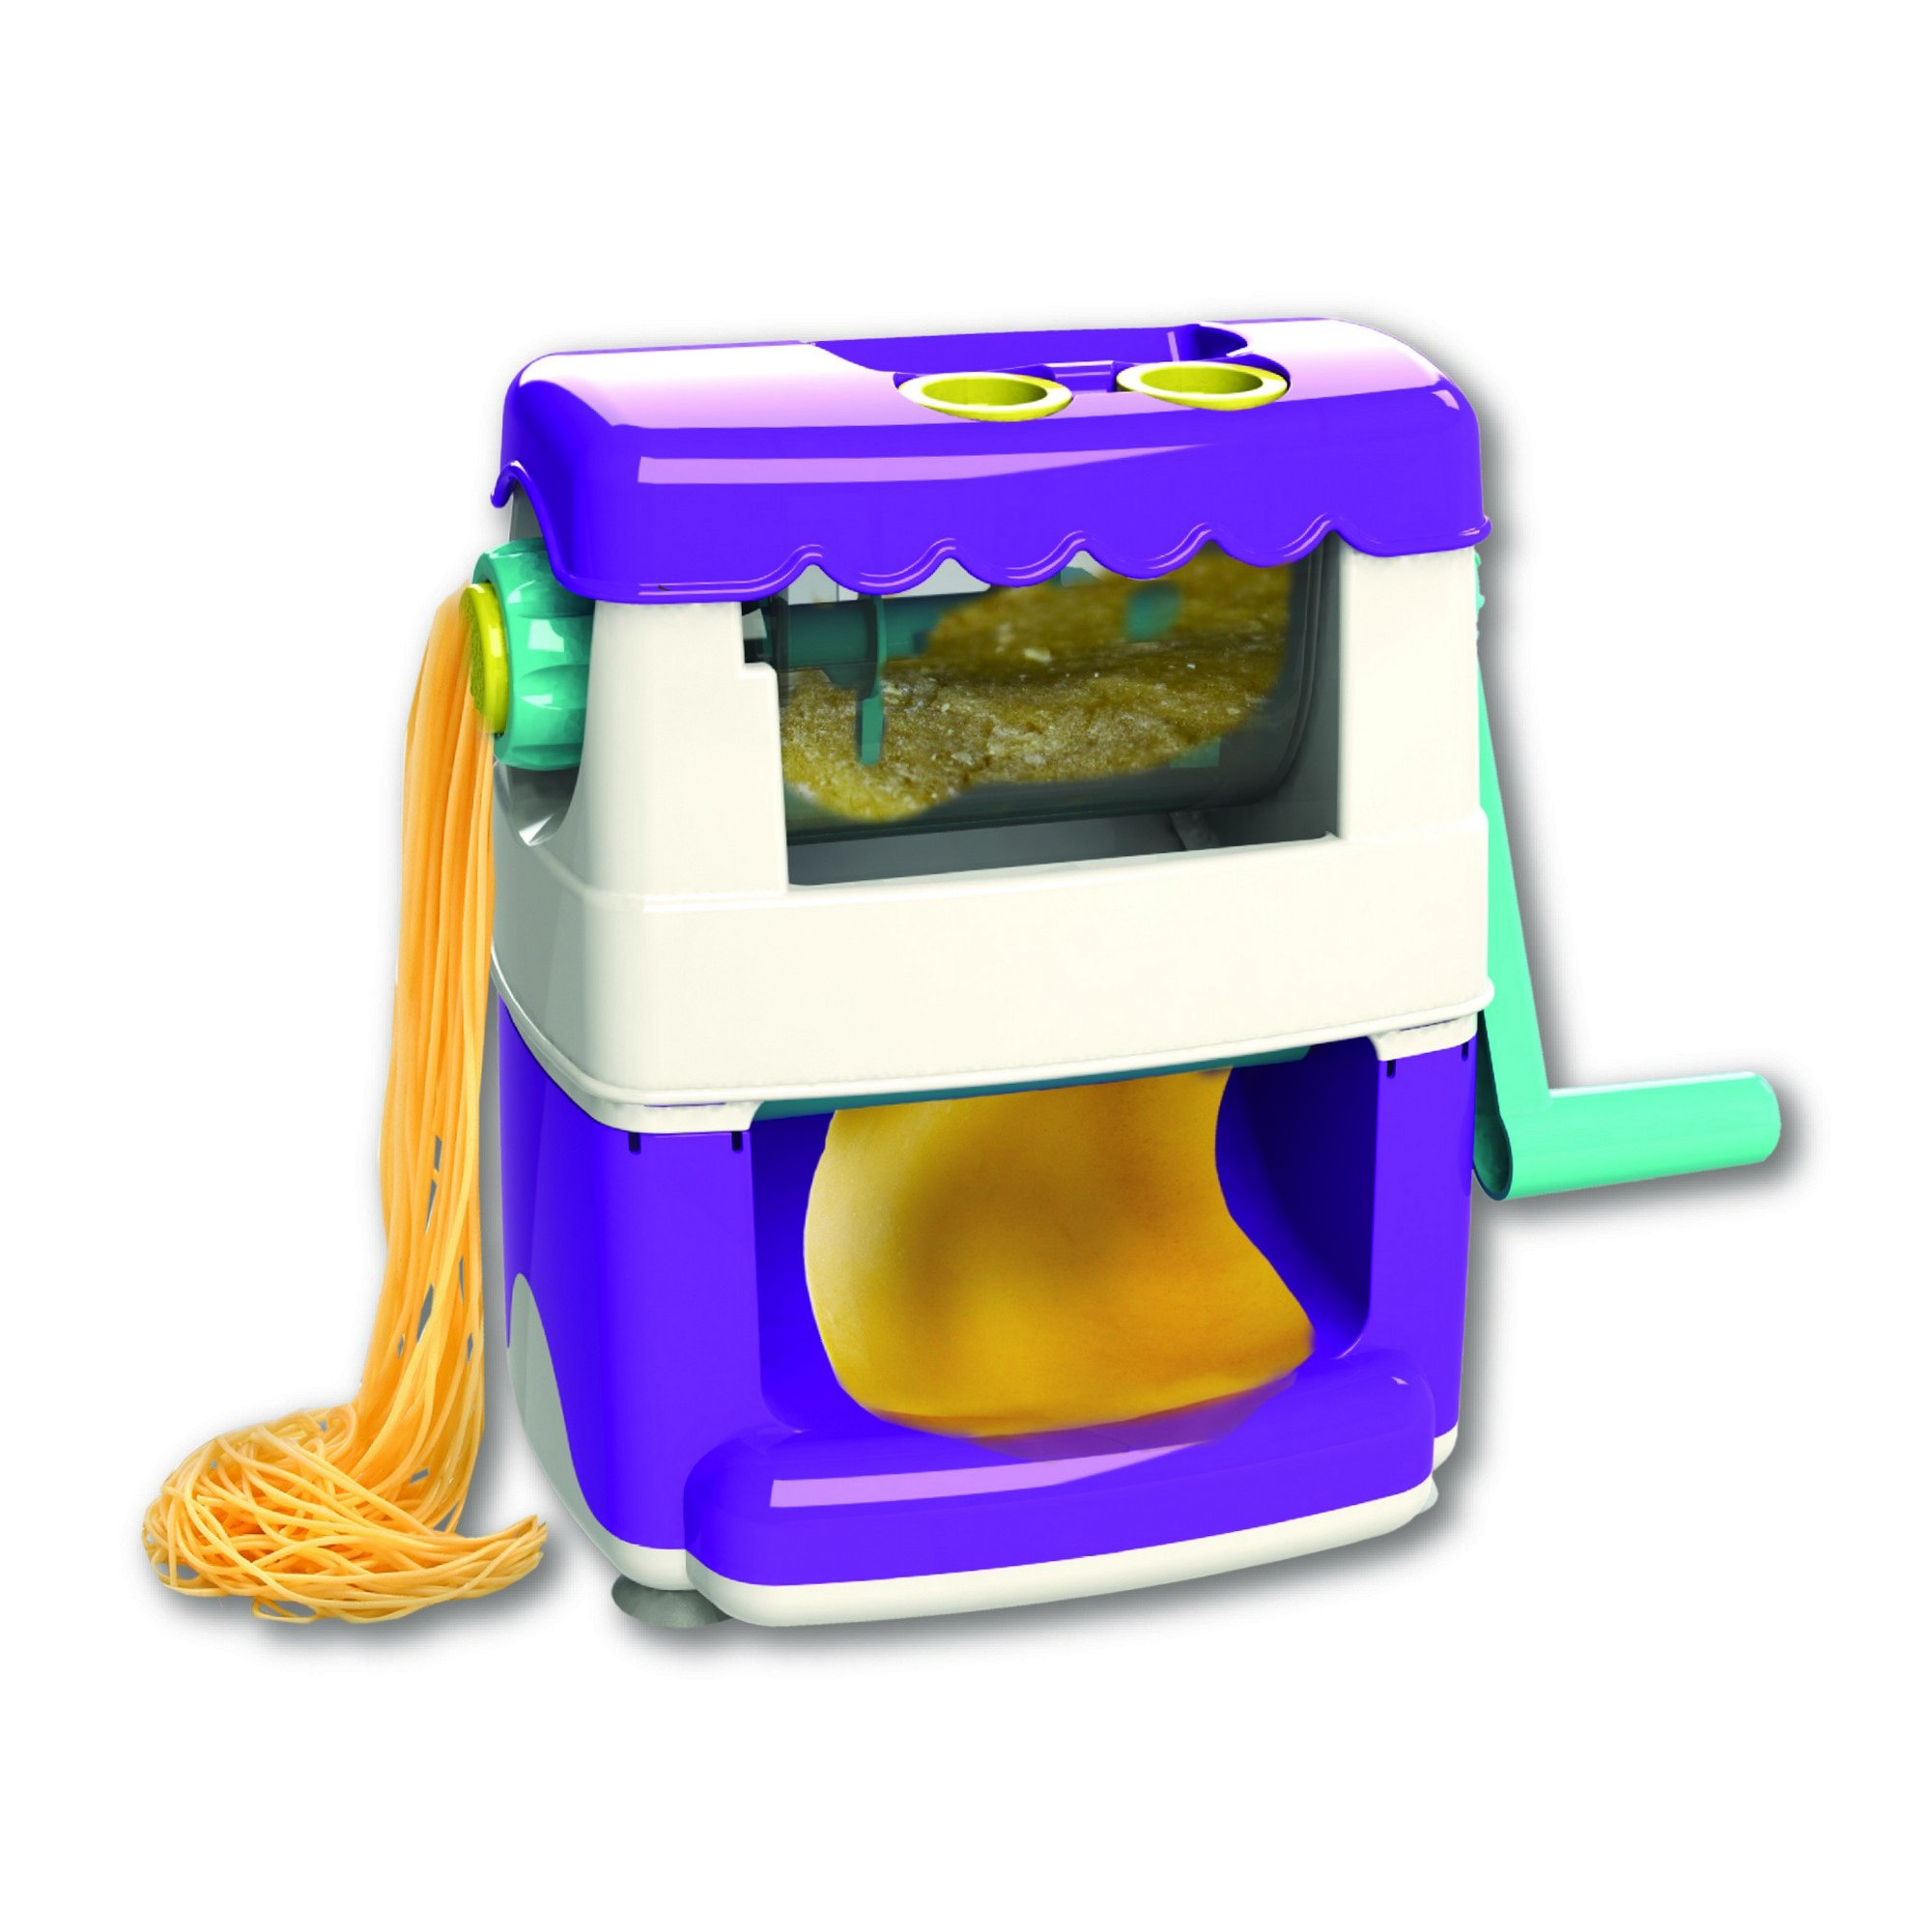 AMAV Ultimate Pasta Maker Machine Kit for Kids - DIY Make Your Own Pasta Master Piece From Scratch!